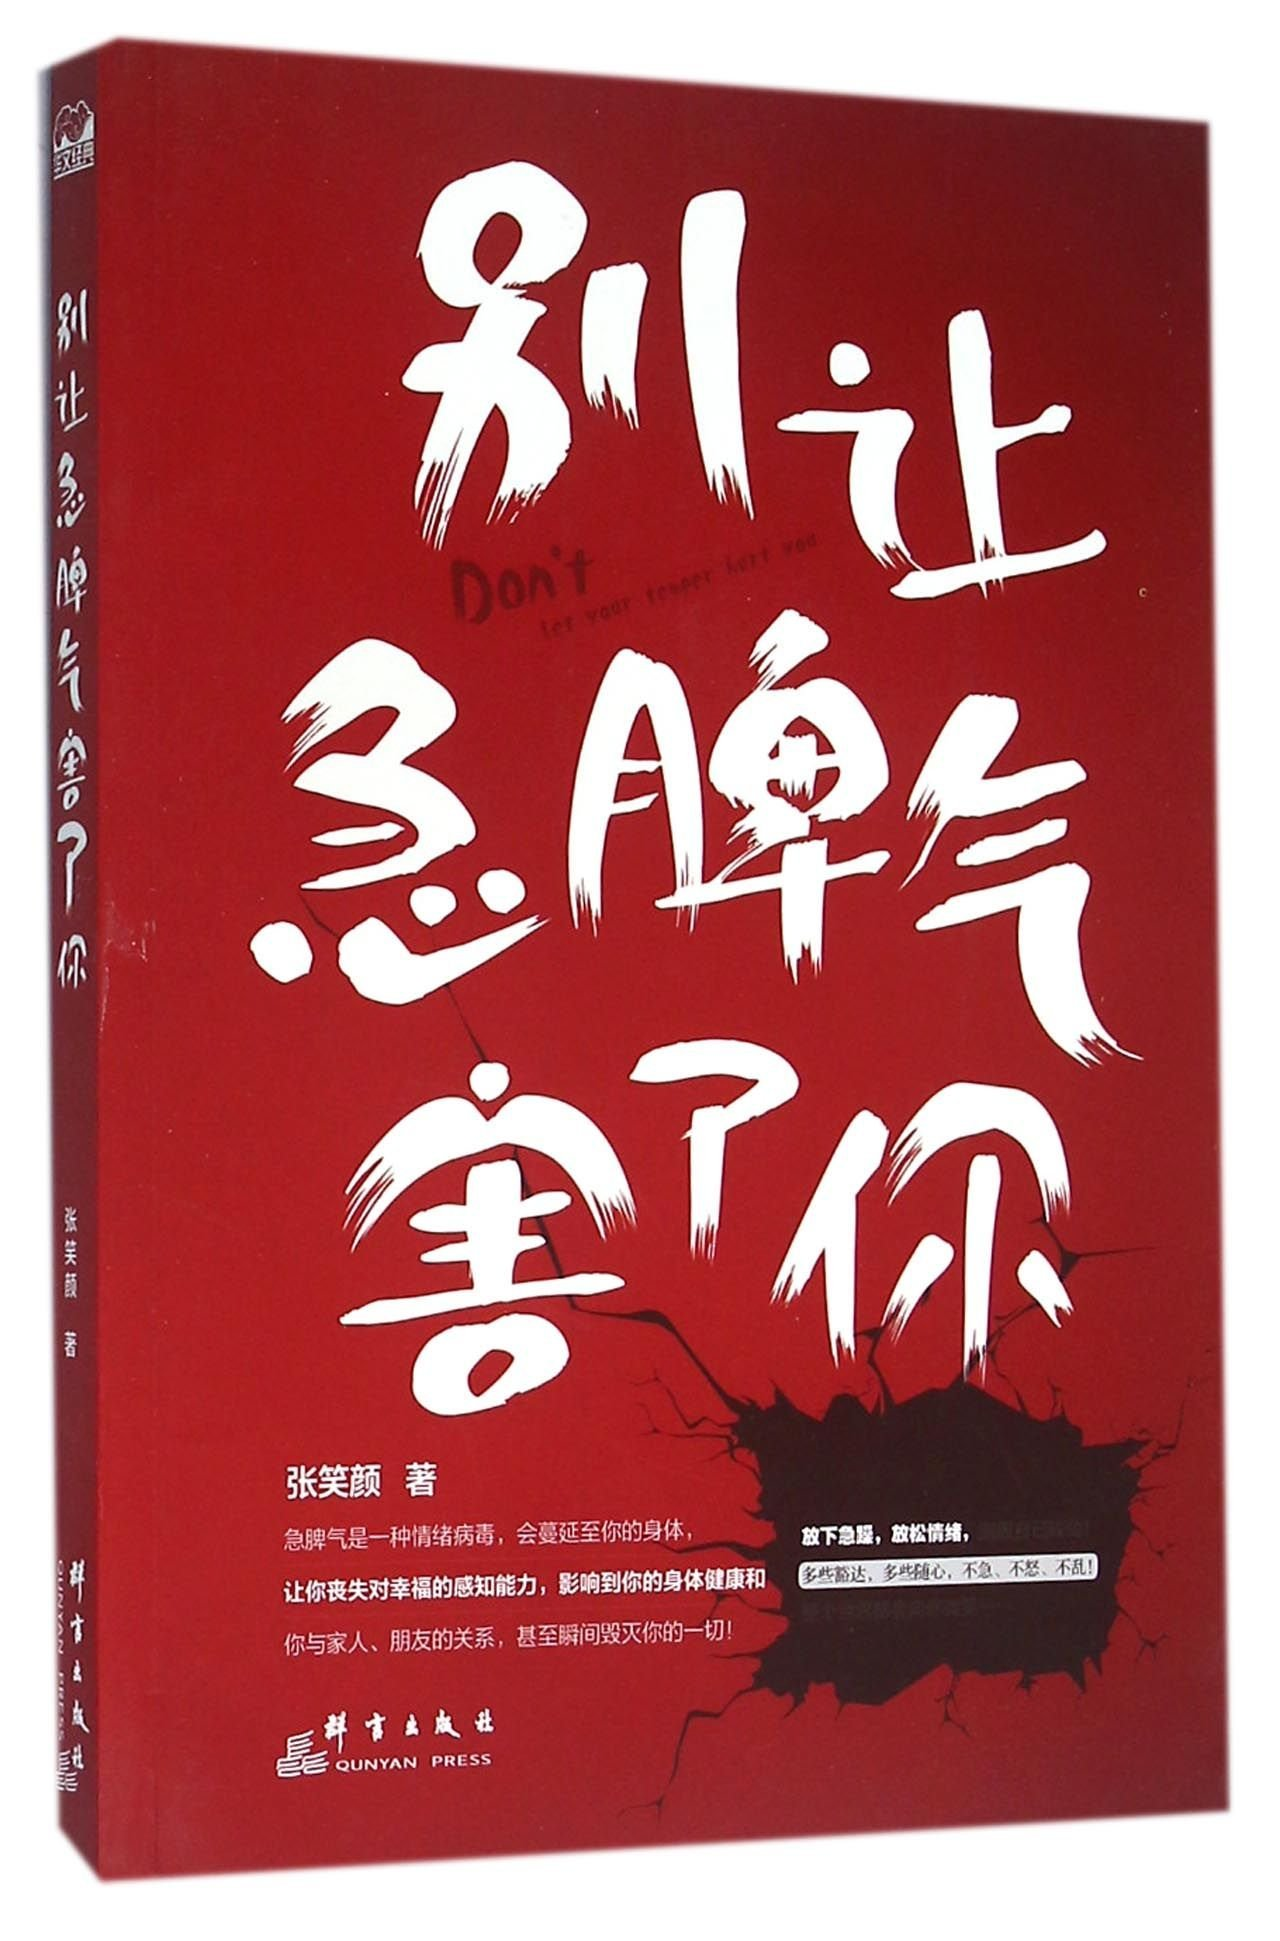 Don't Let Your Temper Hurt You (Chinese Edition) pdf epub